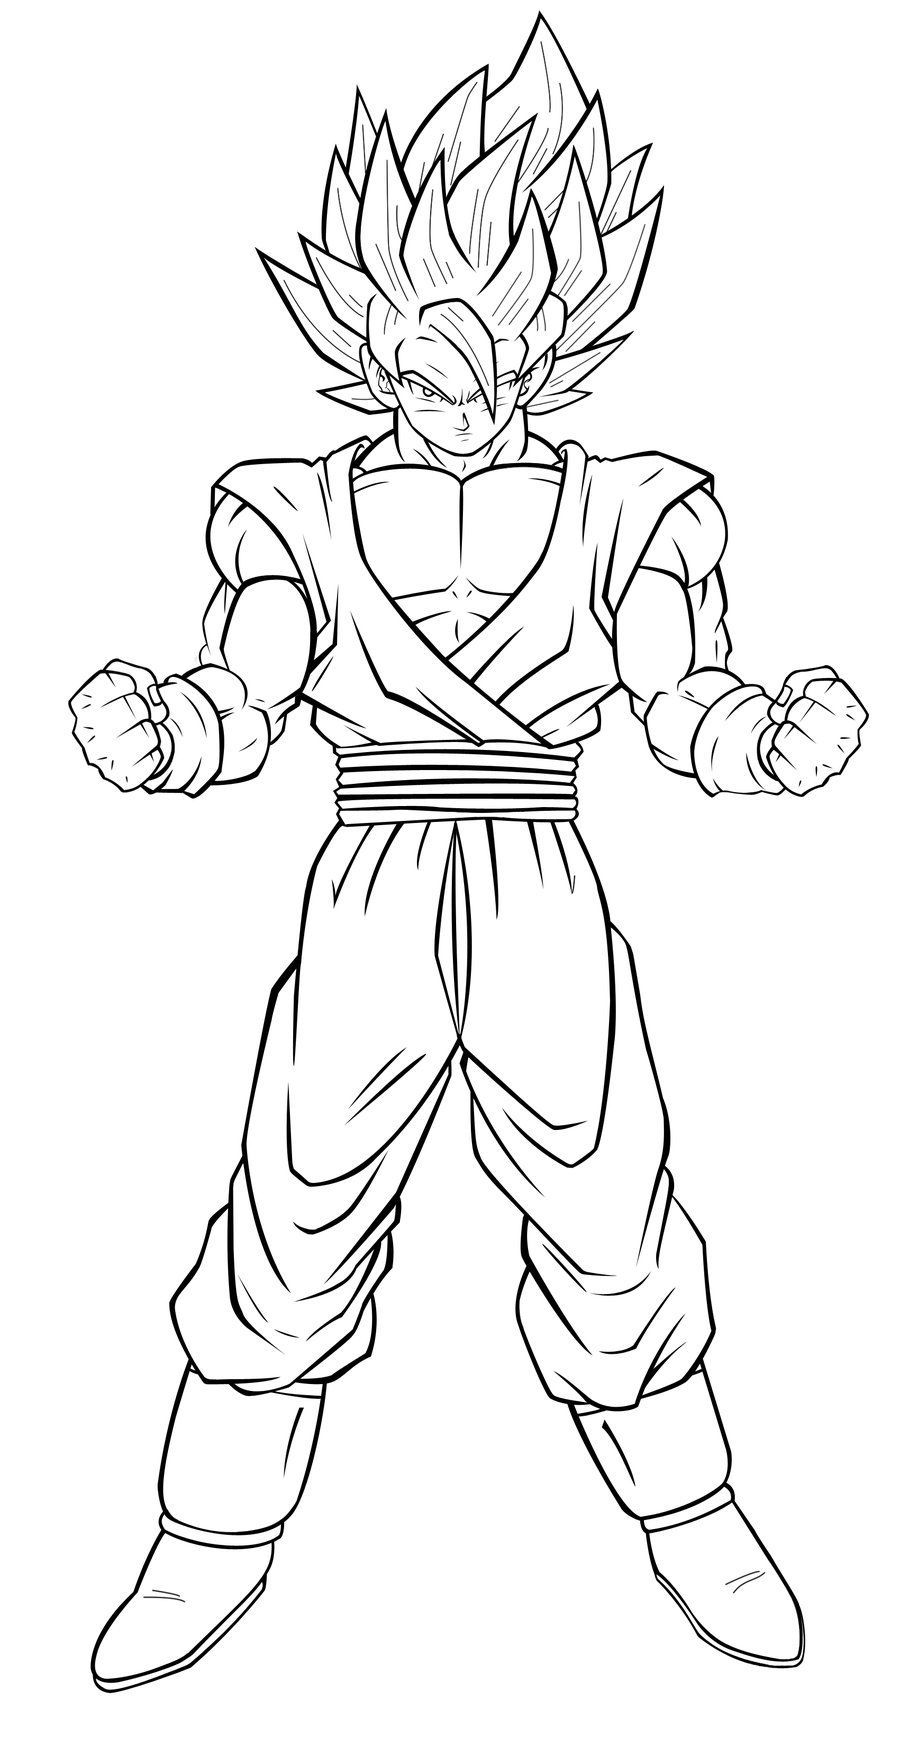 Dragon Ball Z Coloring Pages Goku Dragon Ball Z Coloring Pages Dragon Ball Image Dragon Coloring Page Super Coloring Pages